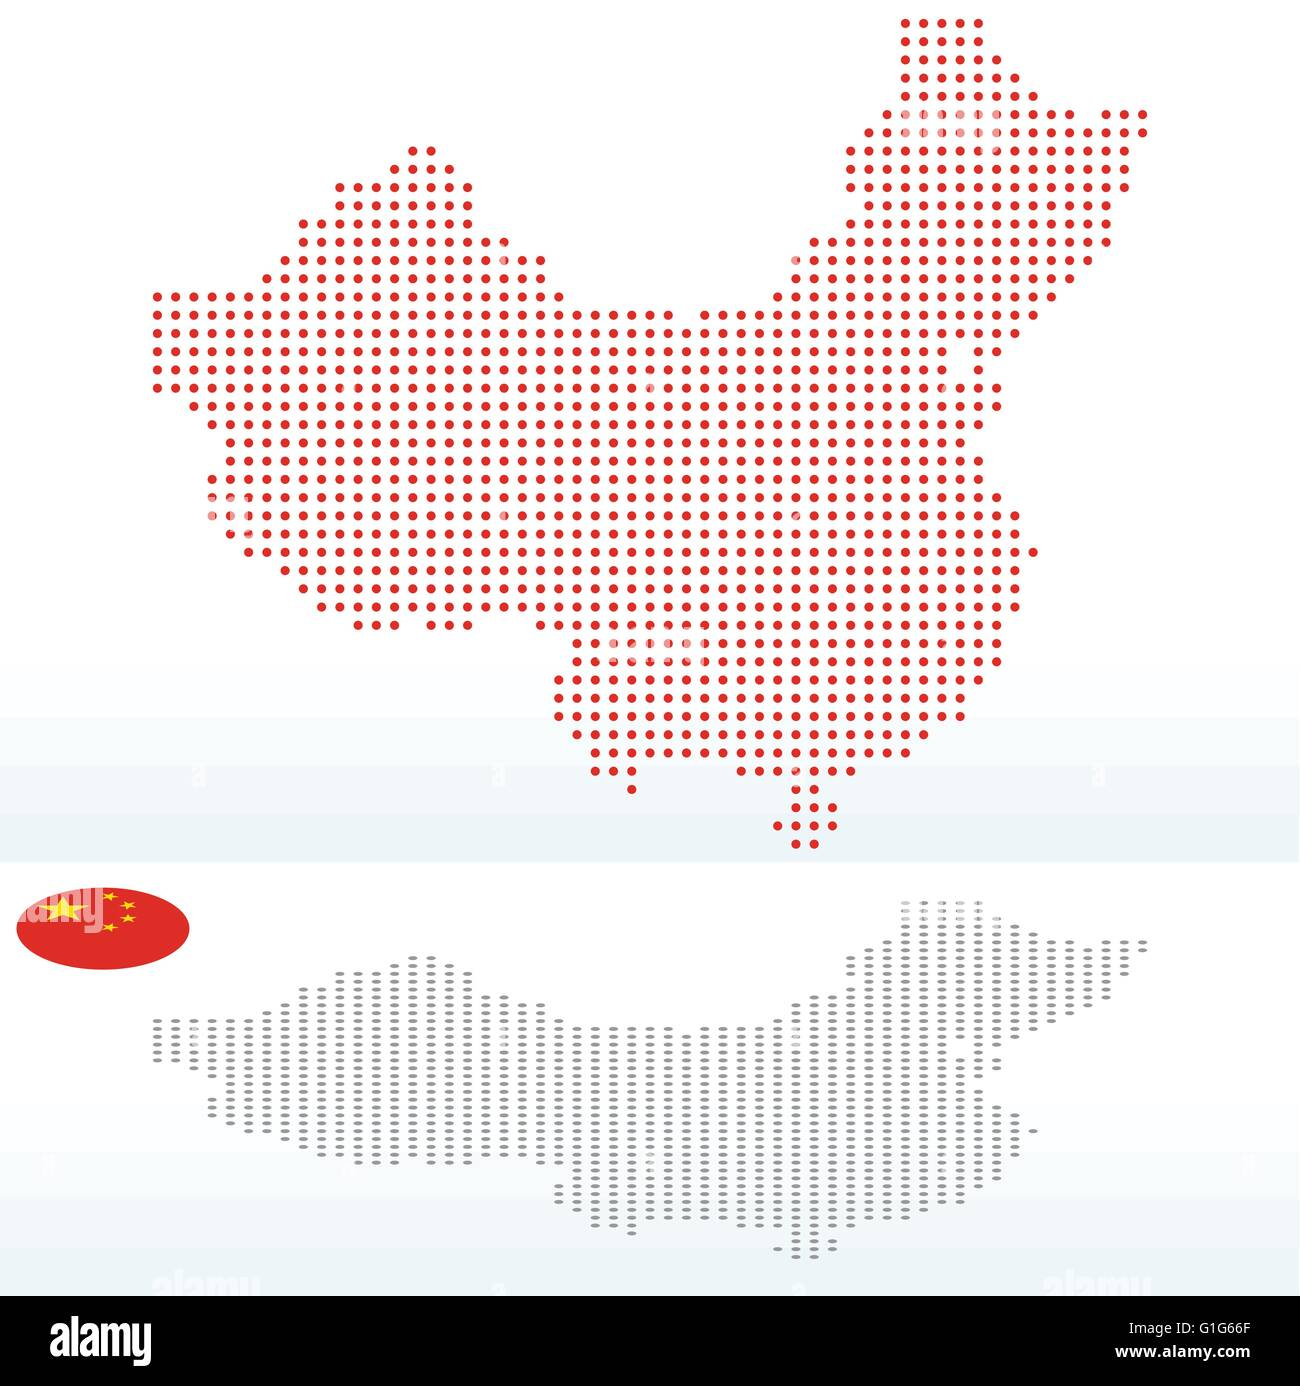 Vector Image -  Map of People's Republic of China with with Dot Pattern - Stock Image